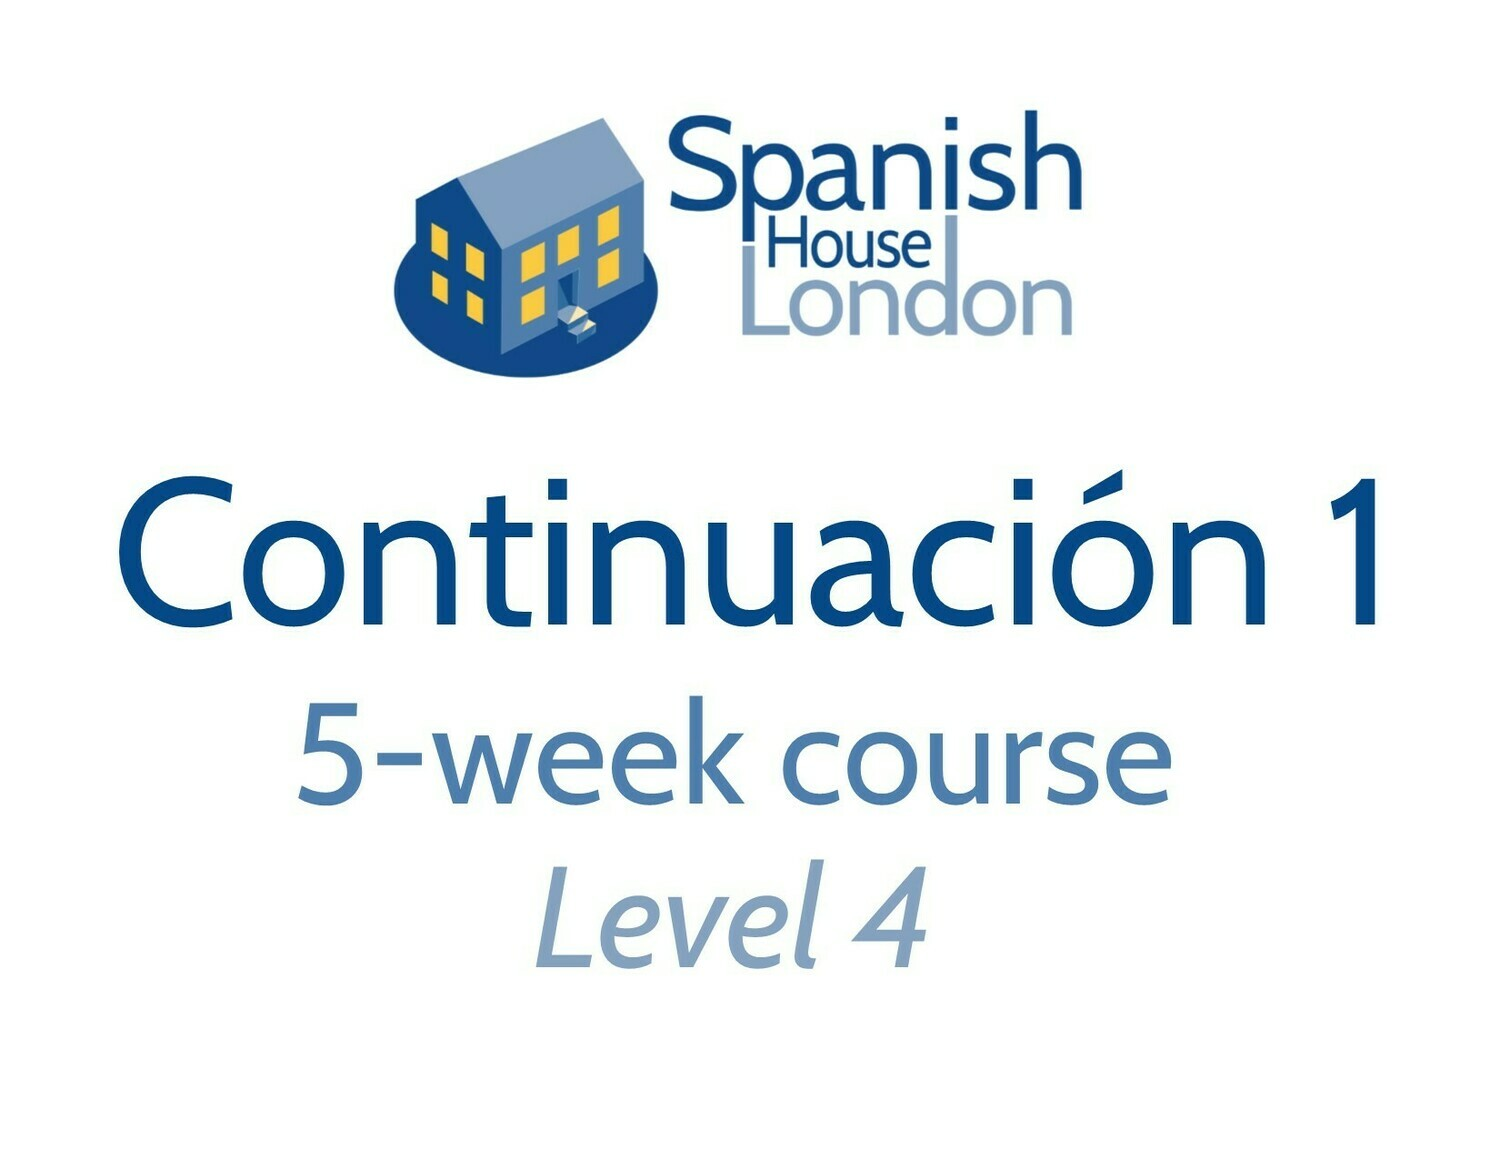 Continuacion 1 Five-Week Intensive Course starting on 19th May at 6pm